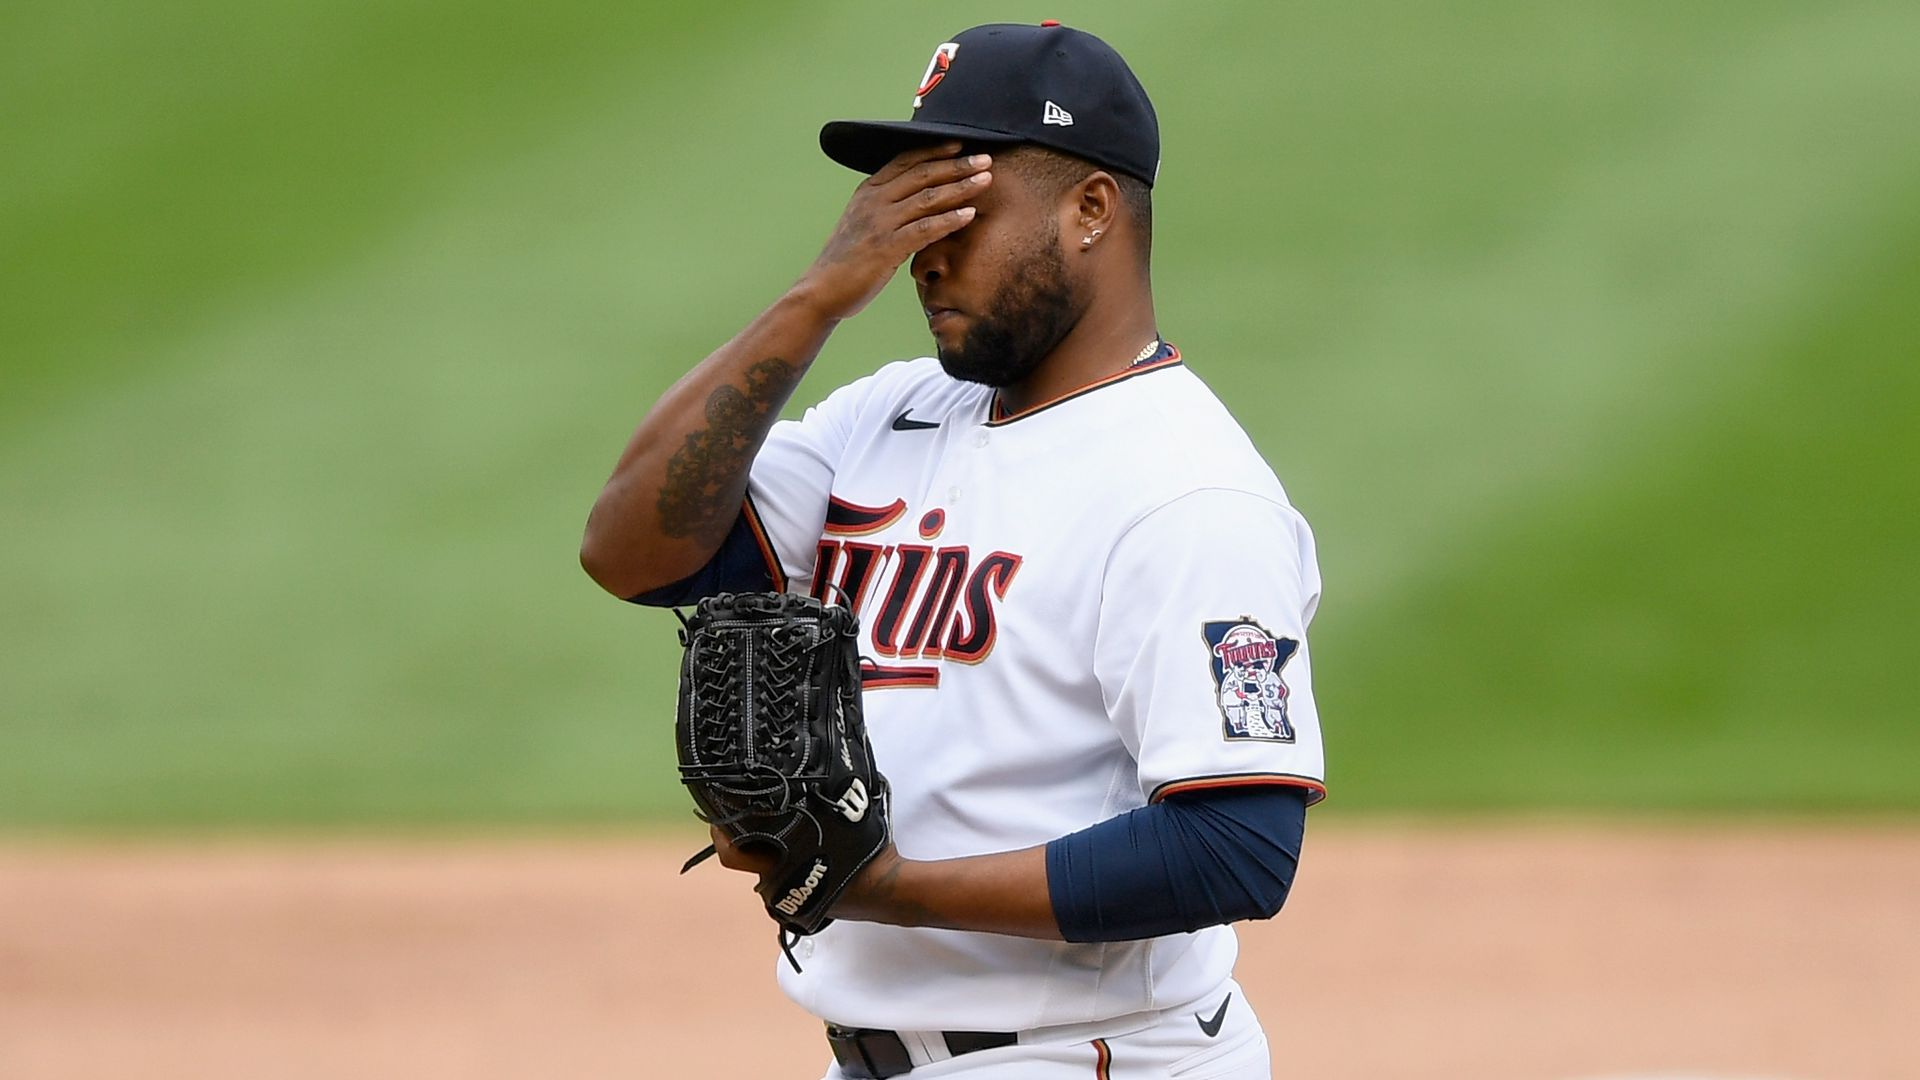 A baseball player puts his hand over his face